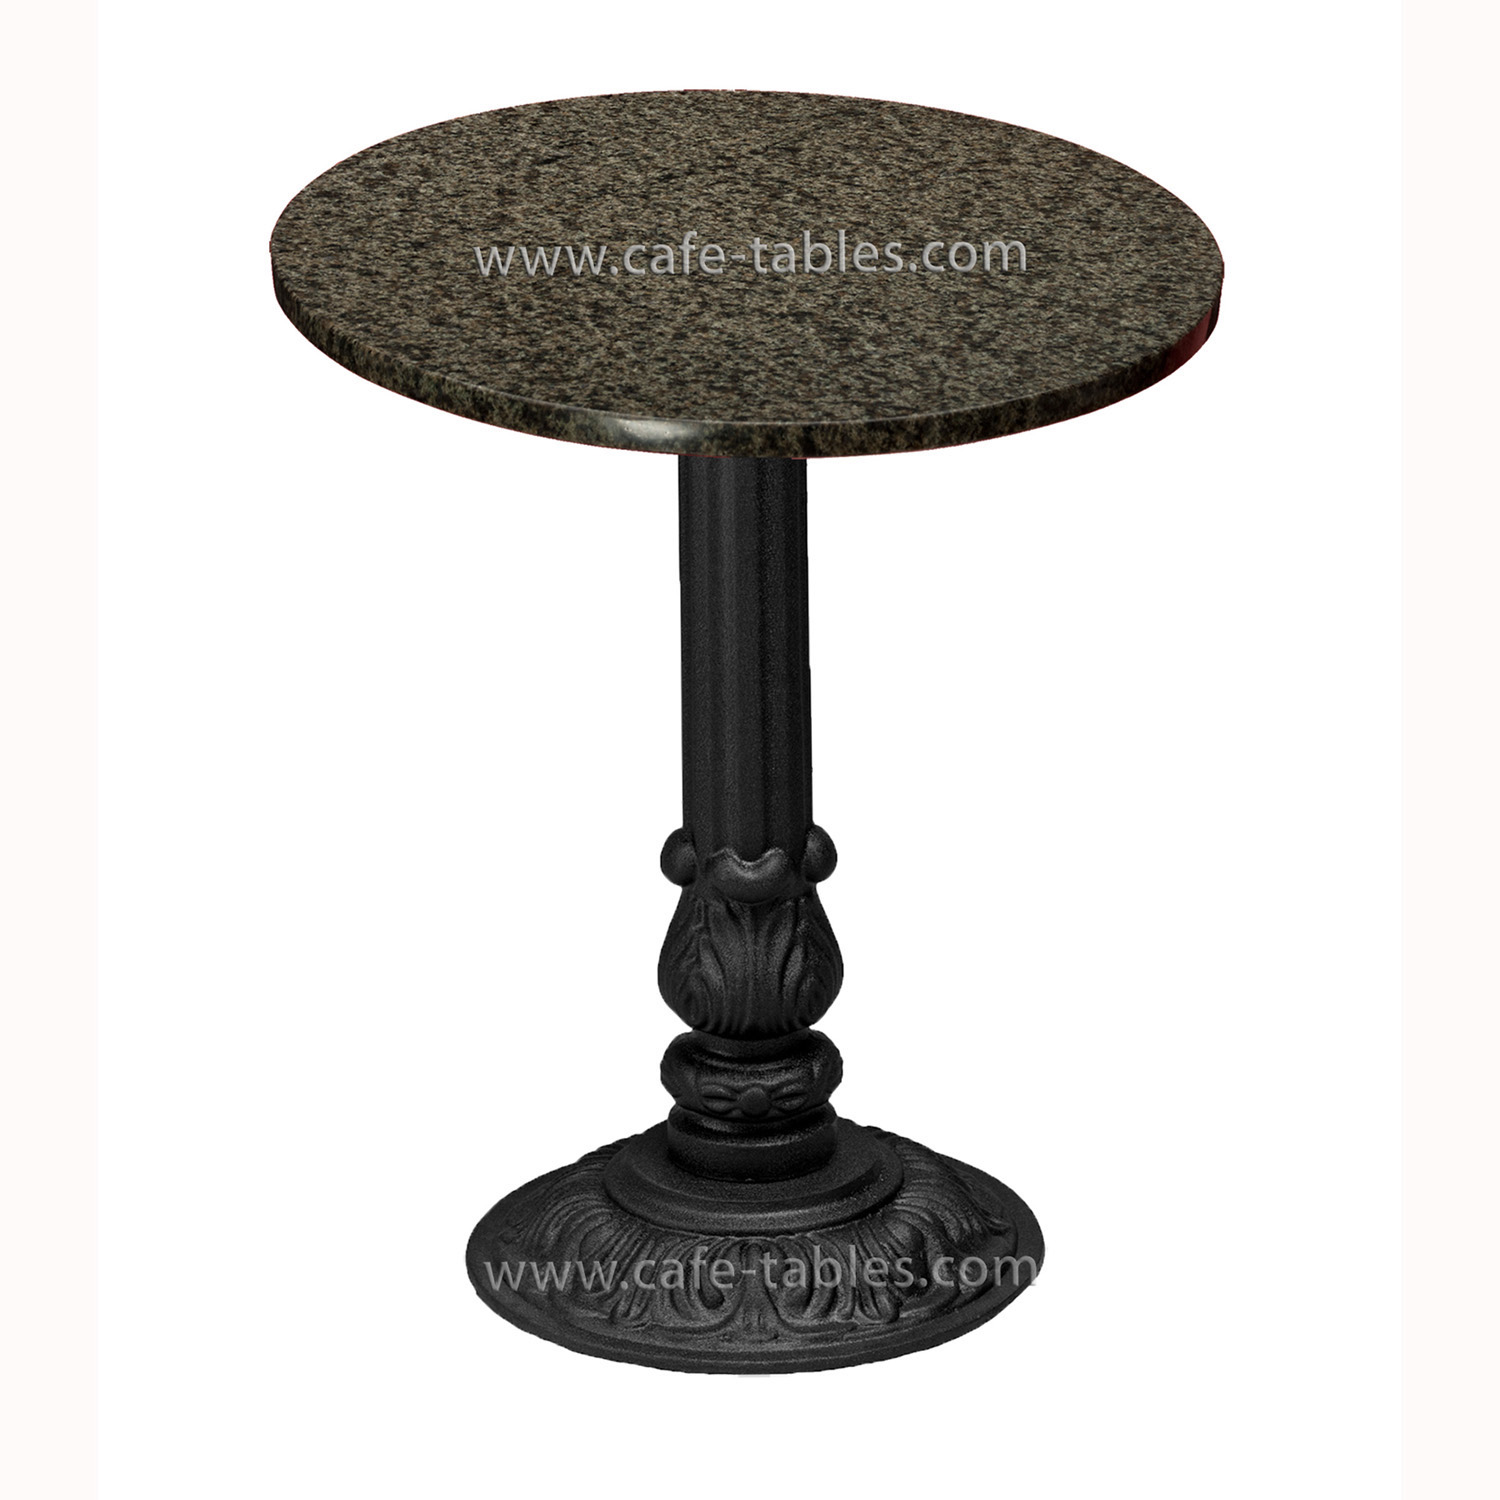 river green granite table top with vintage pieta base